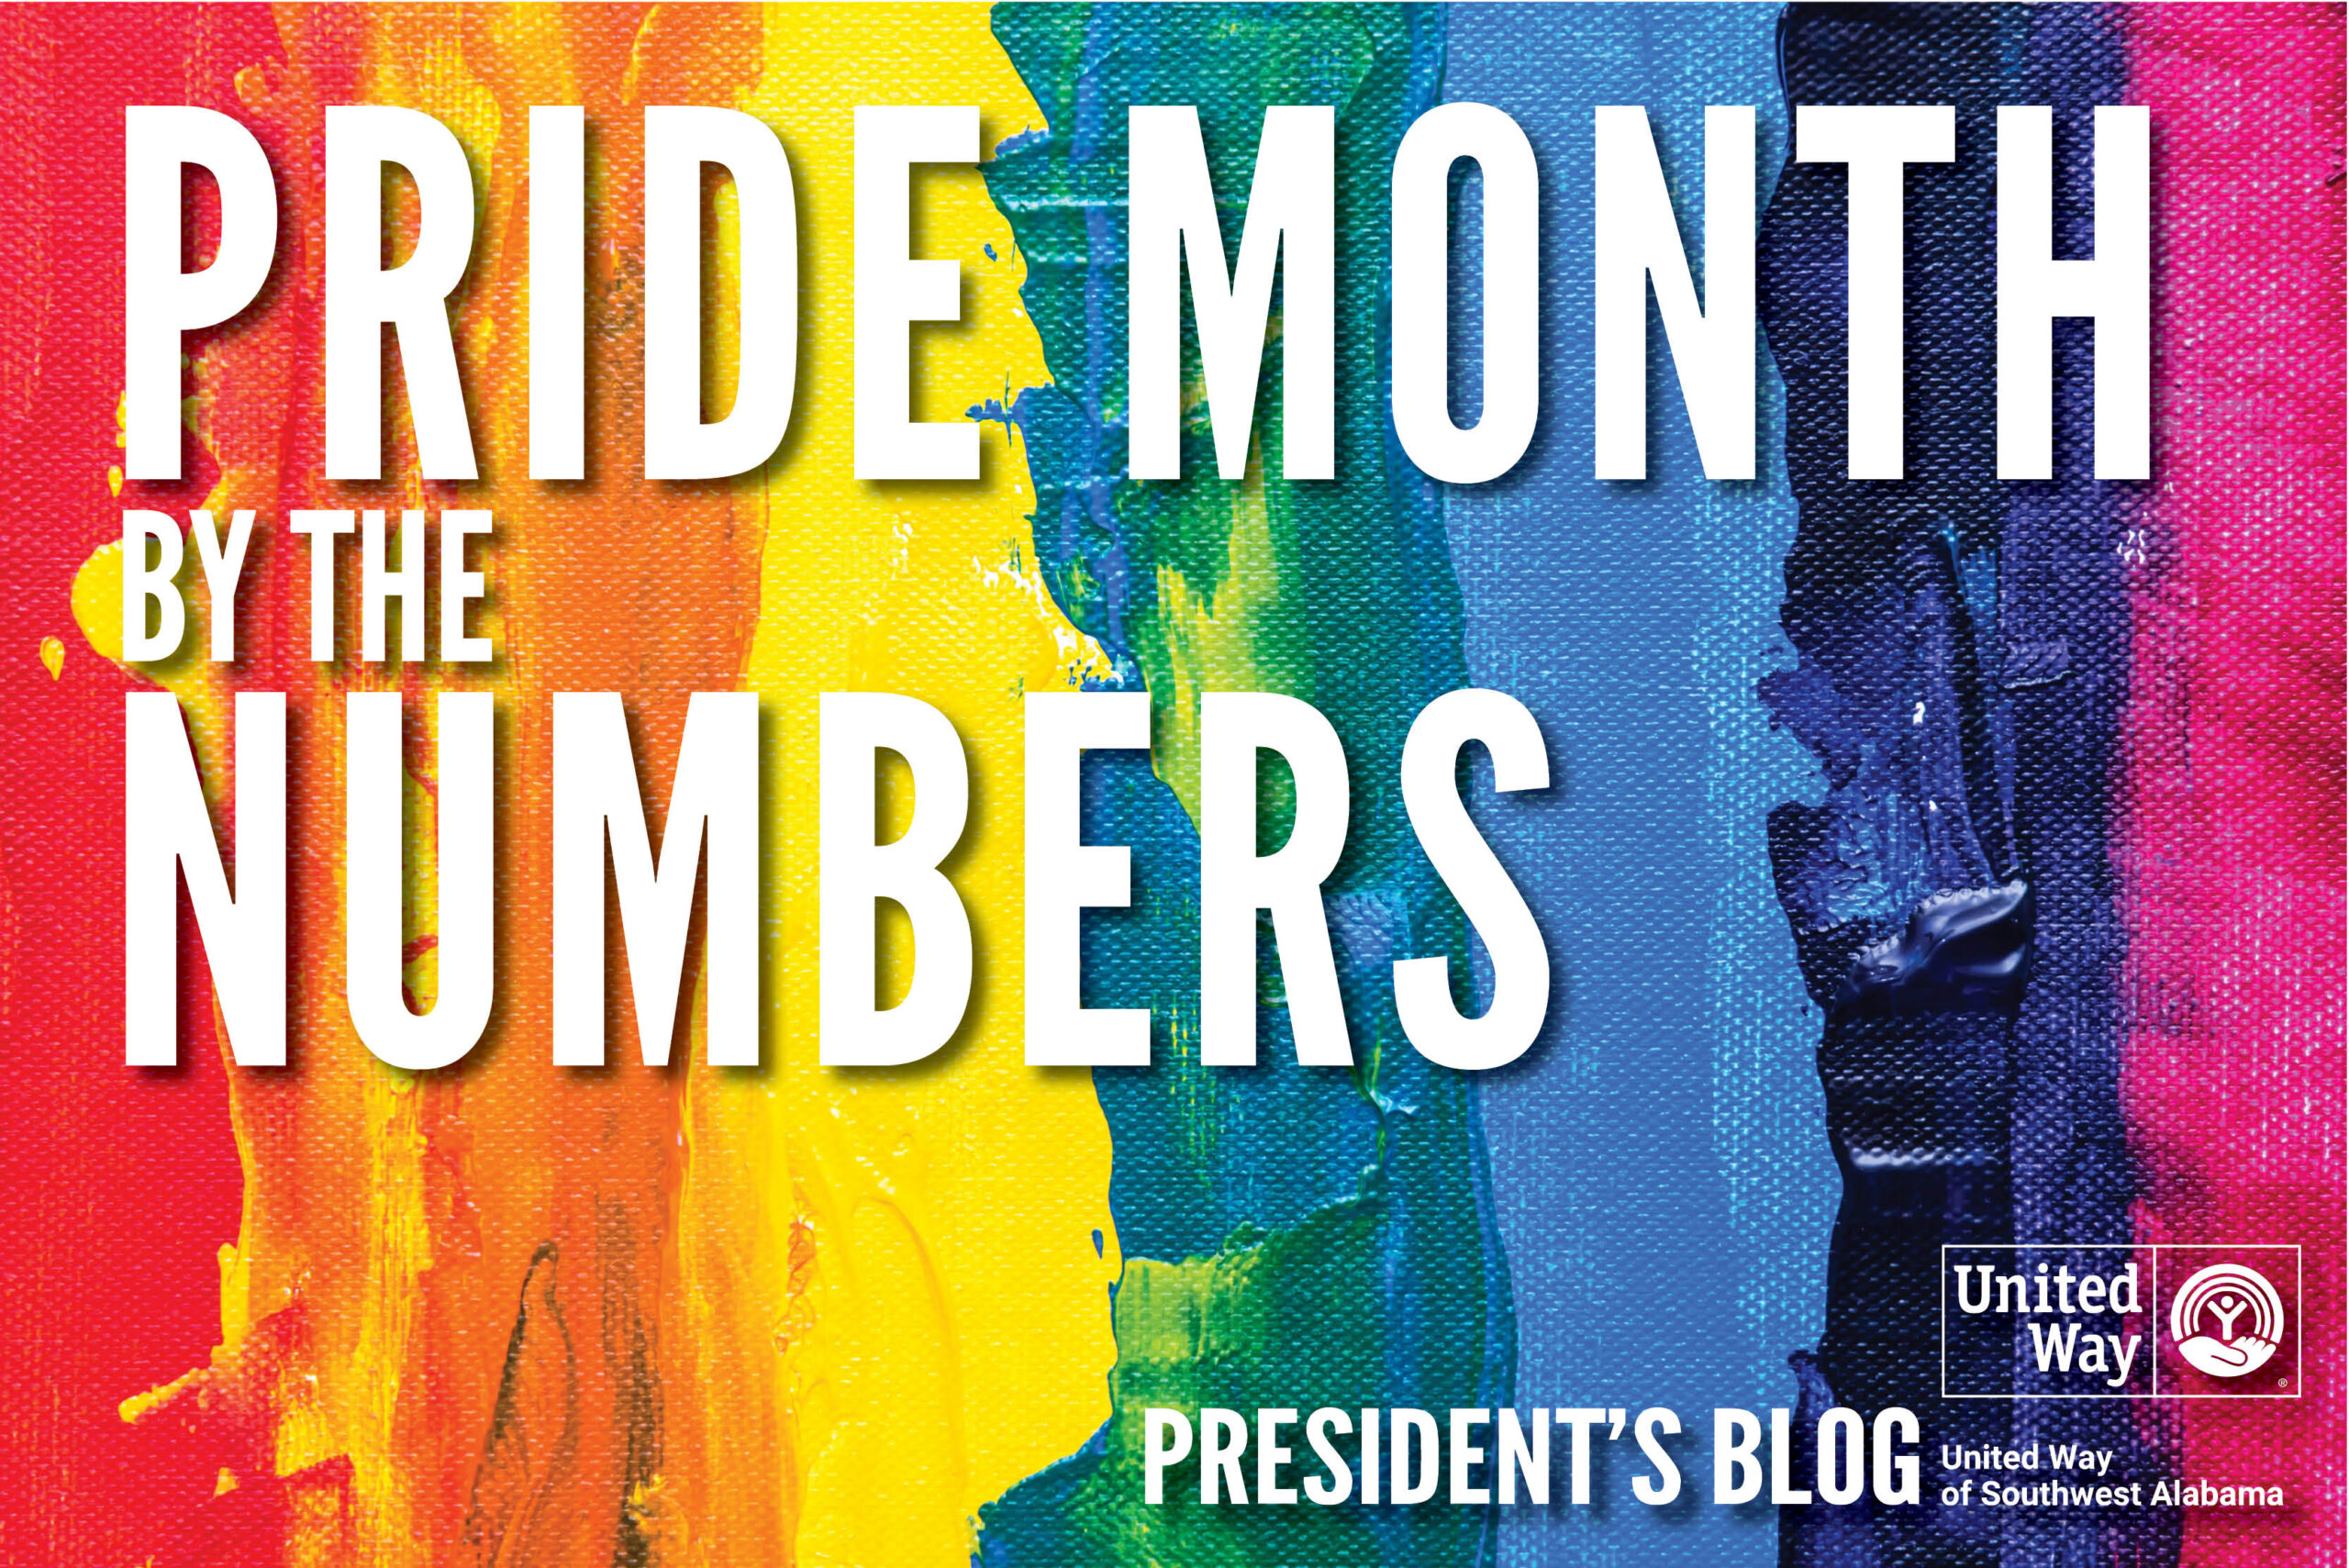 President's June Blog - PRIDE by the Numbers